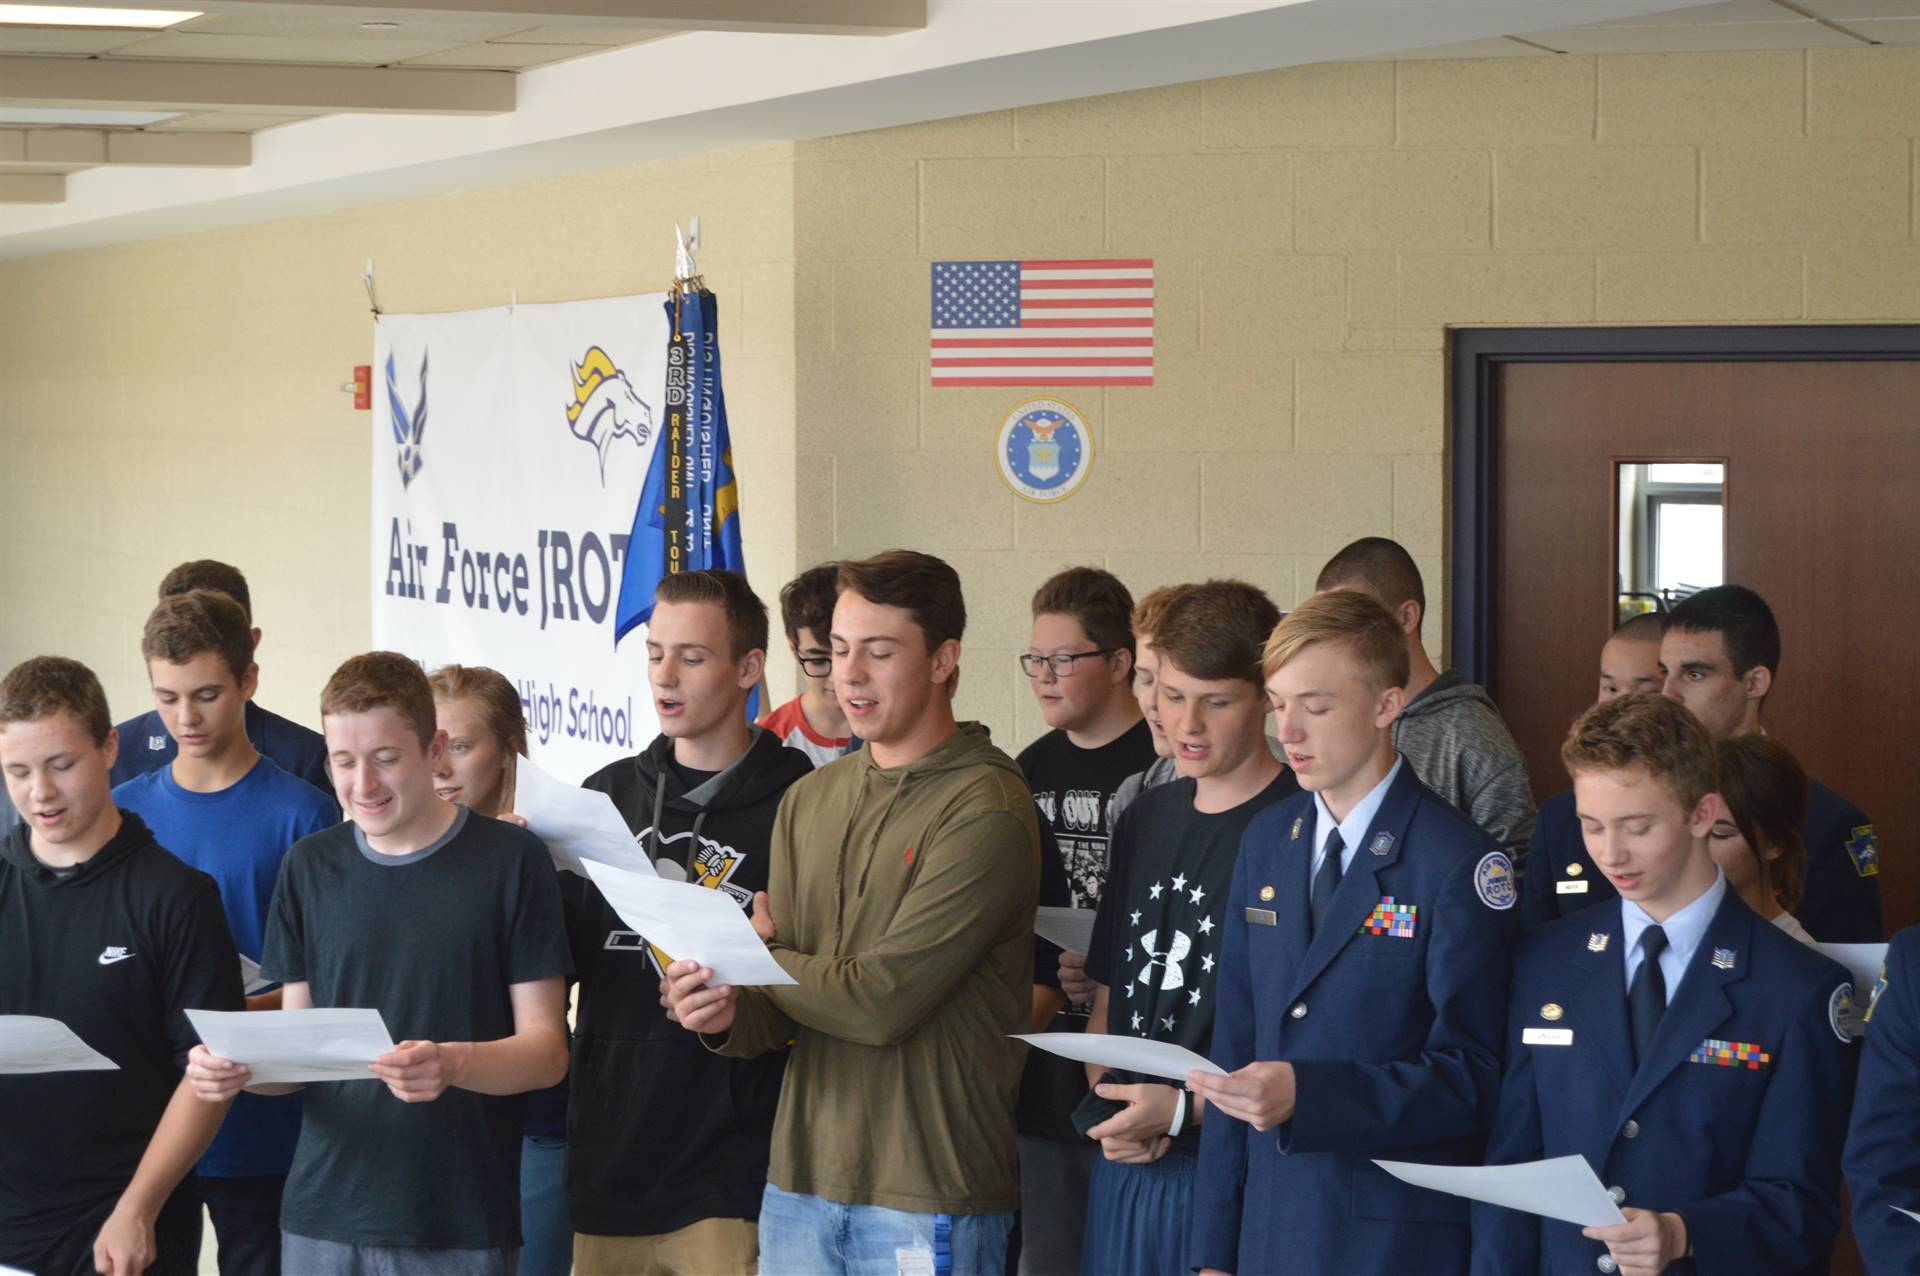 Plum AFJROTC cadets and staff celebrated the Air Force's 71st birthday with a cake and the Air Force